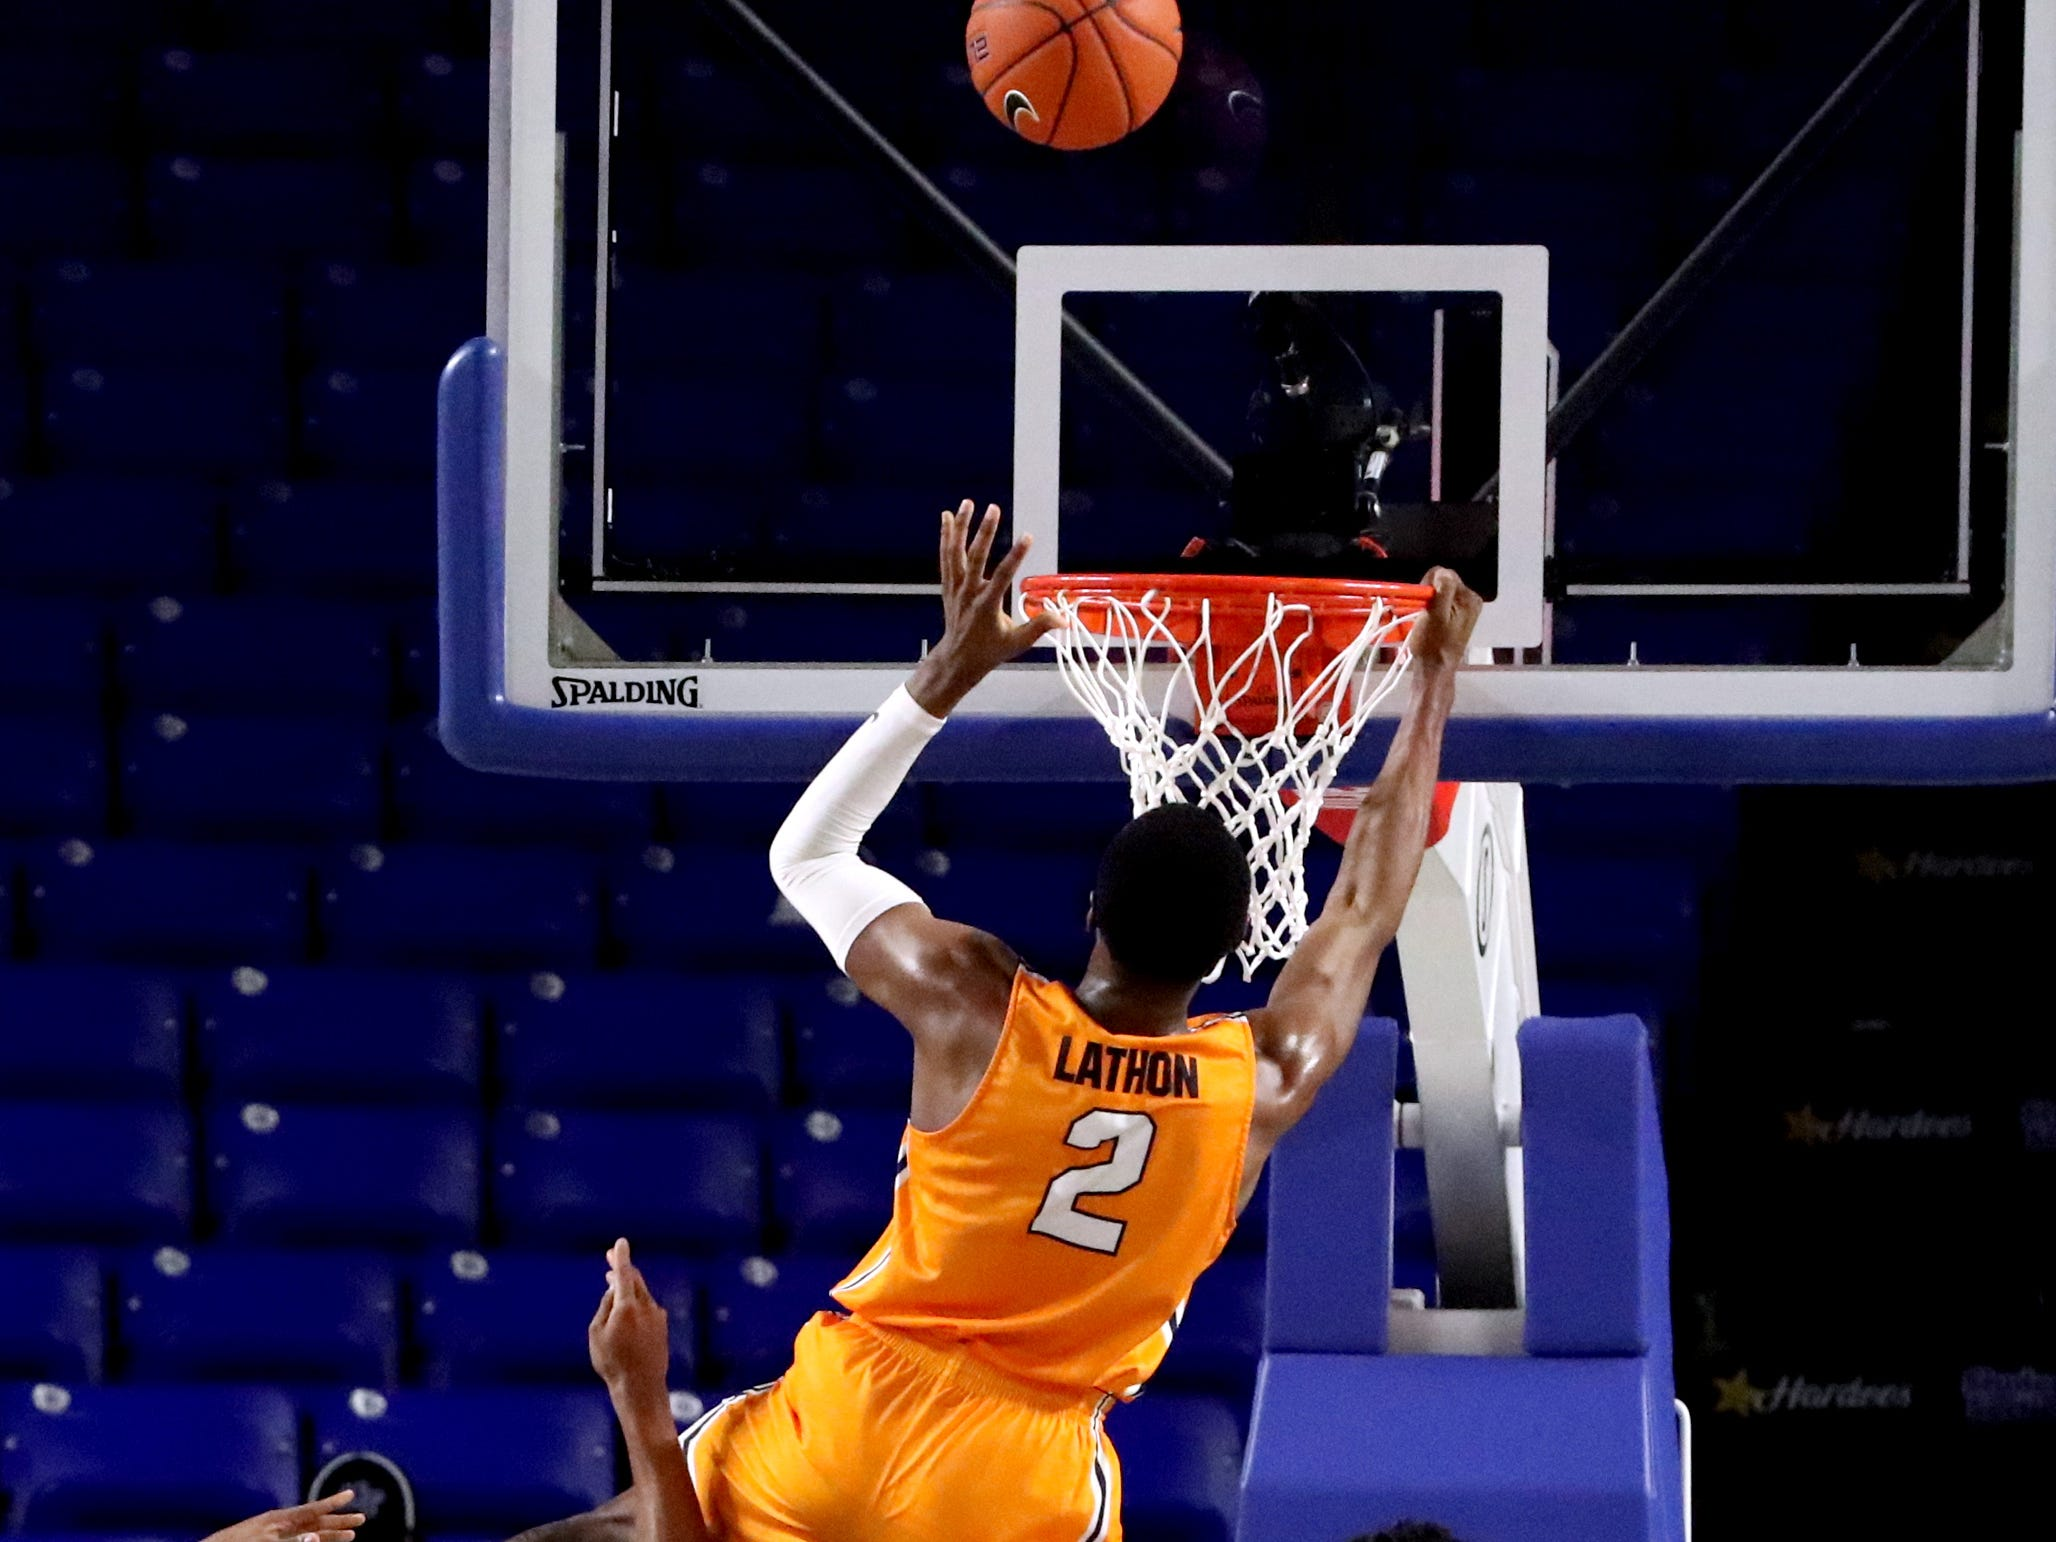 UTEP guard Jordan Lathon (2) holds onto the rim to make his ball go into the net on Saturday against MTSU, March 9, 2019, at Murphy Center in Murfreesboro, Tenn.